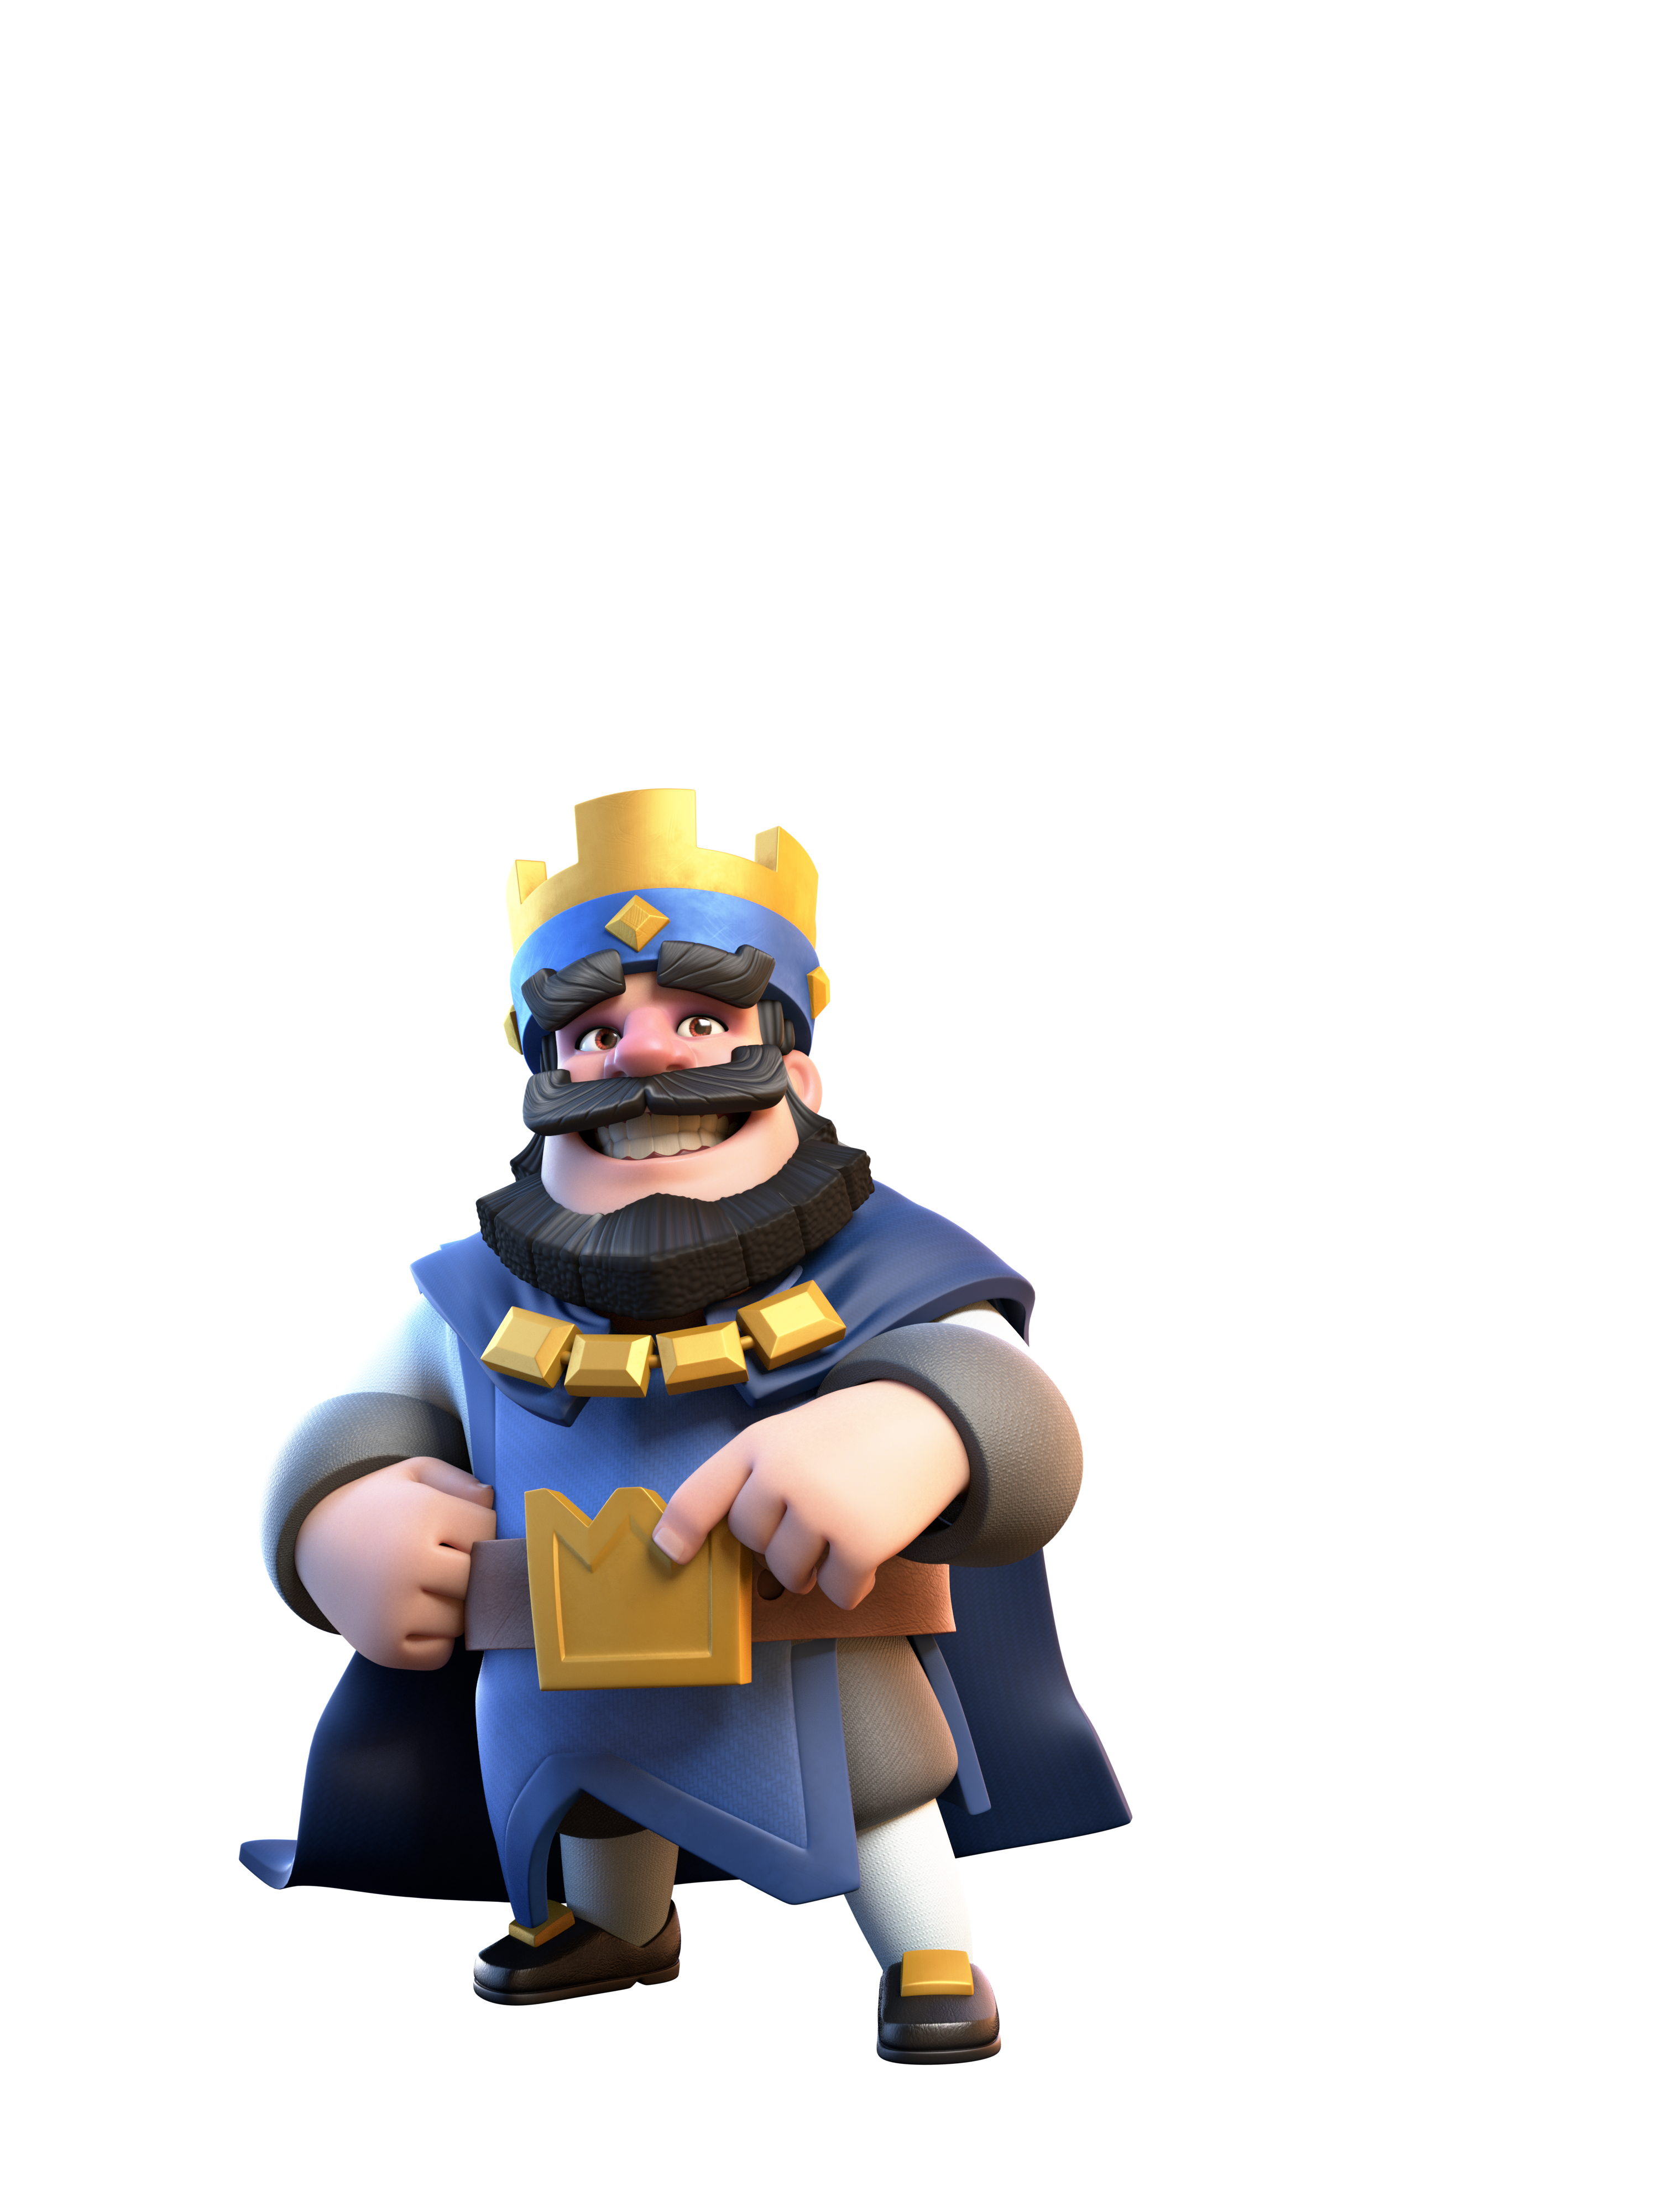 Knight png clash royale. Download apk and play